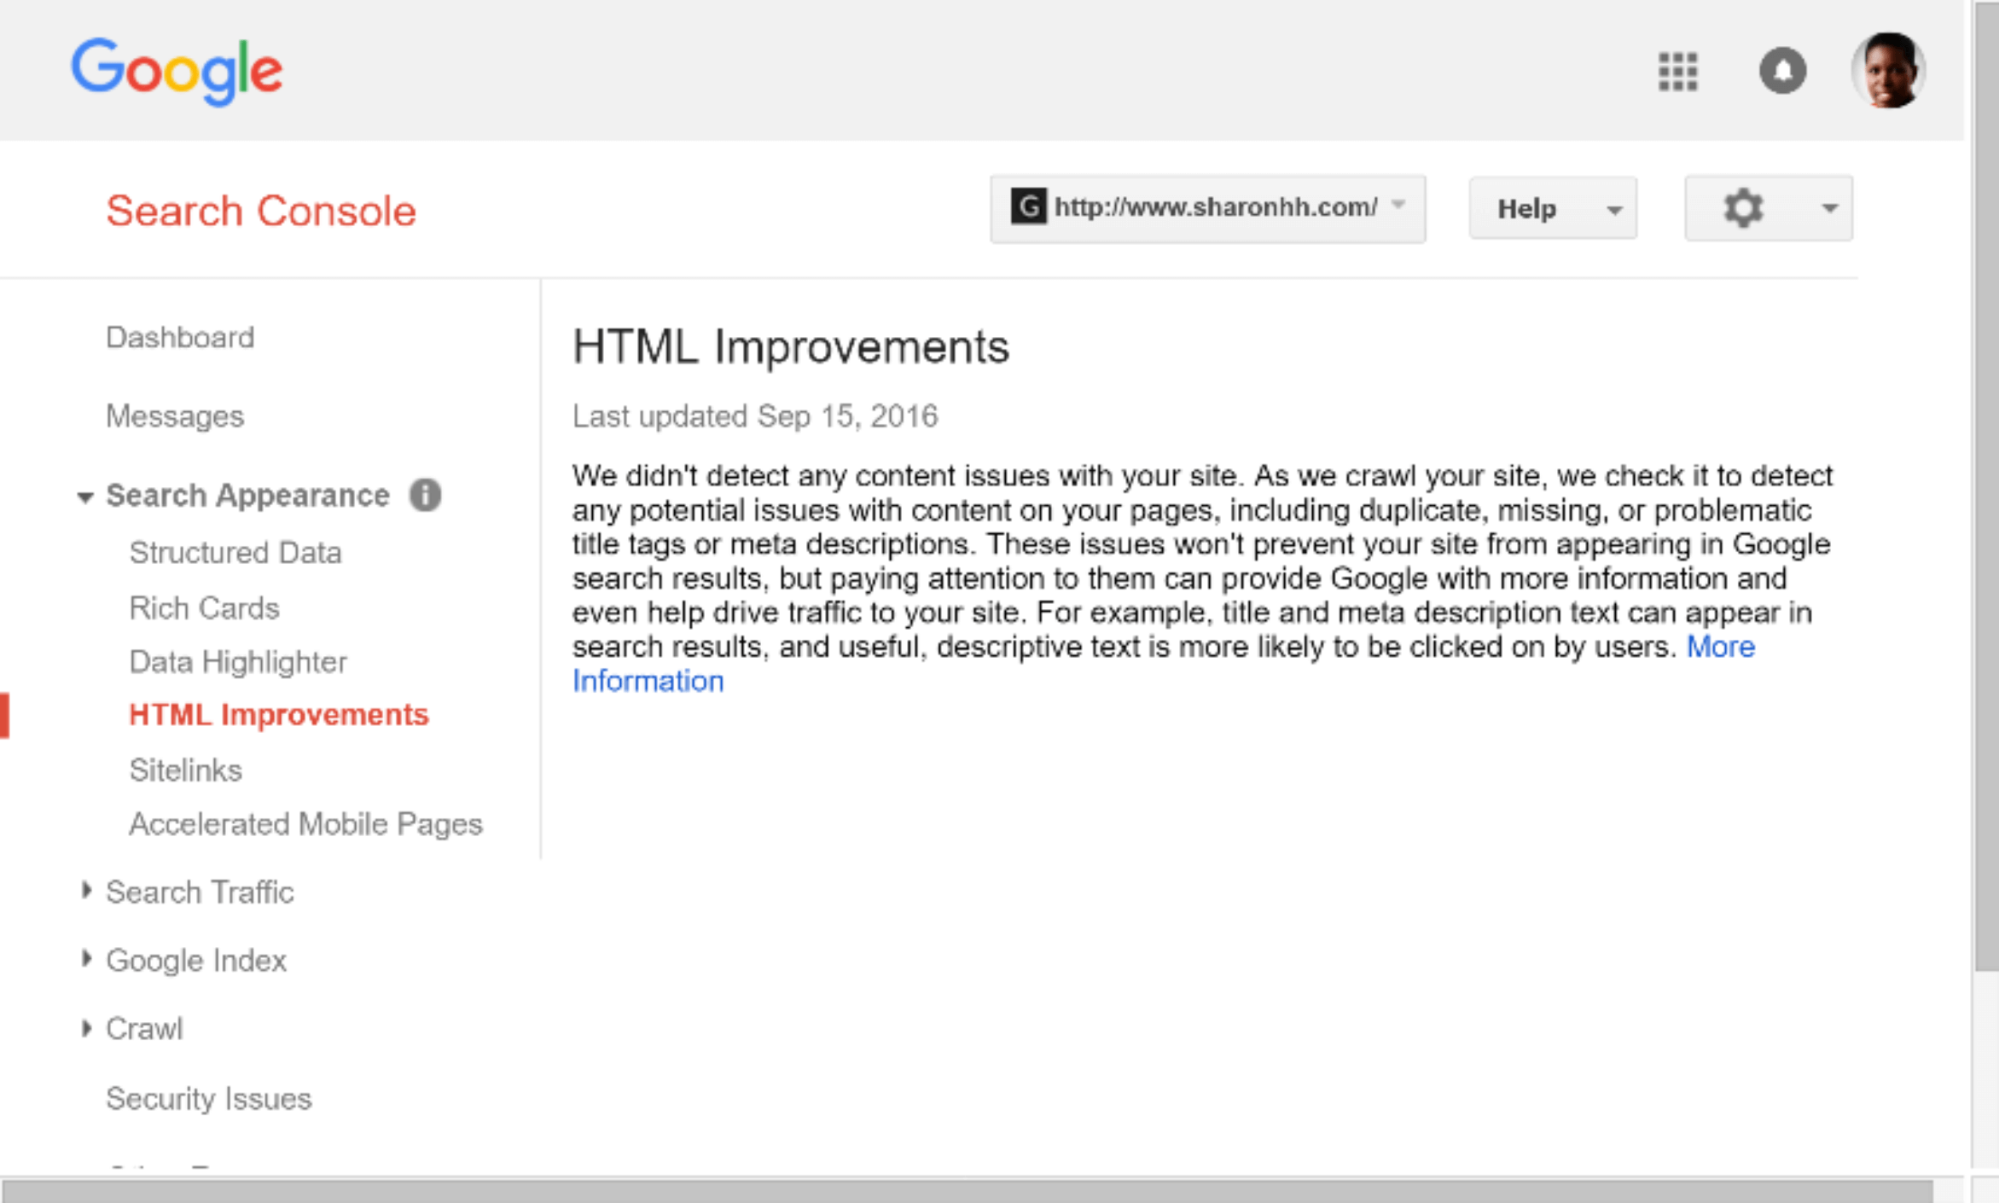 google-search-console-html-improvements